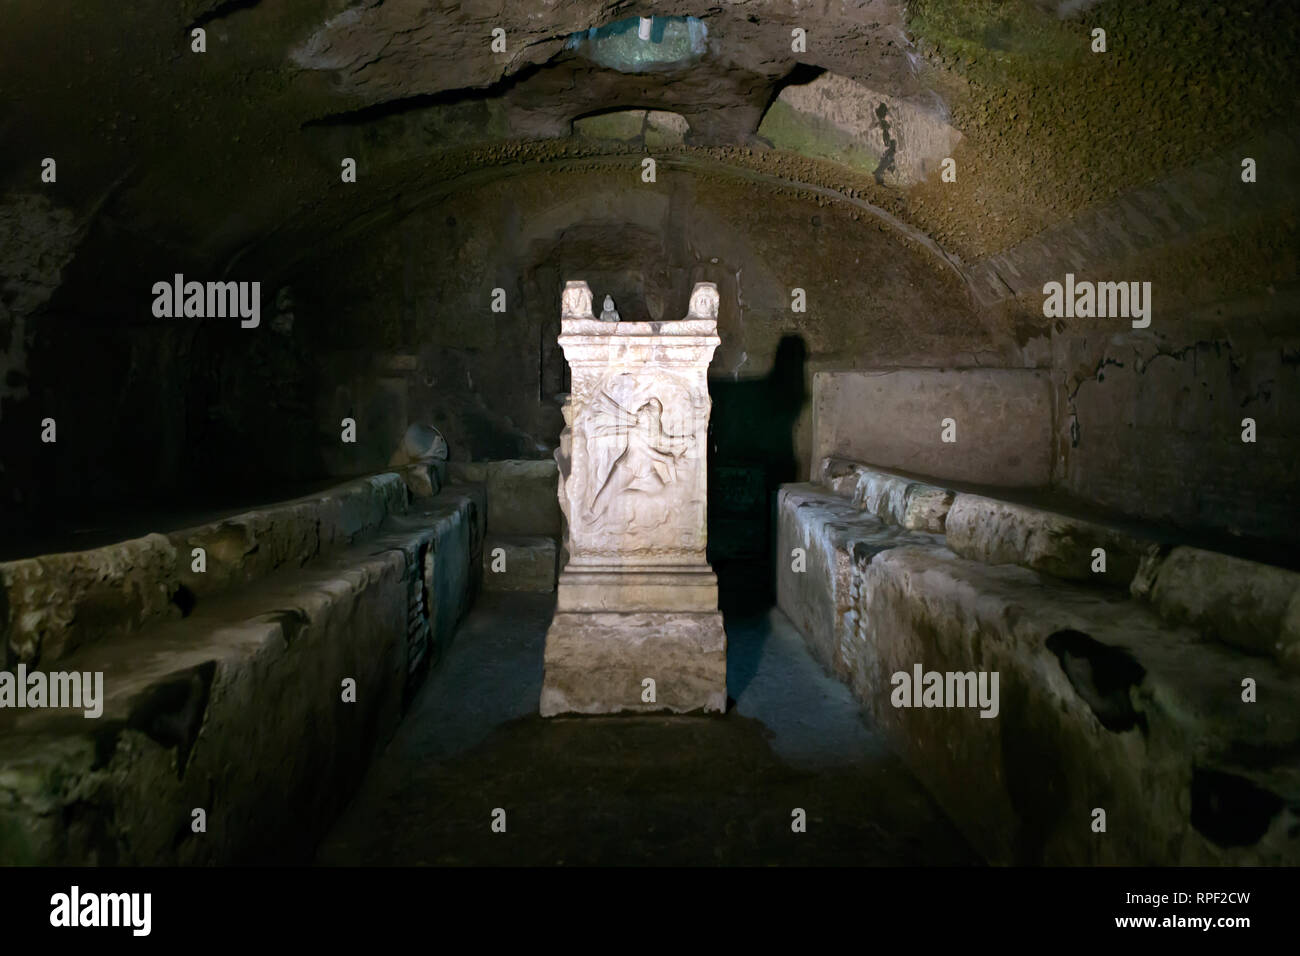 ROME - Temple dedicated to the Roman god Mithras, hidden underneath the church of Saint Clement. - Stock Image